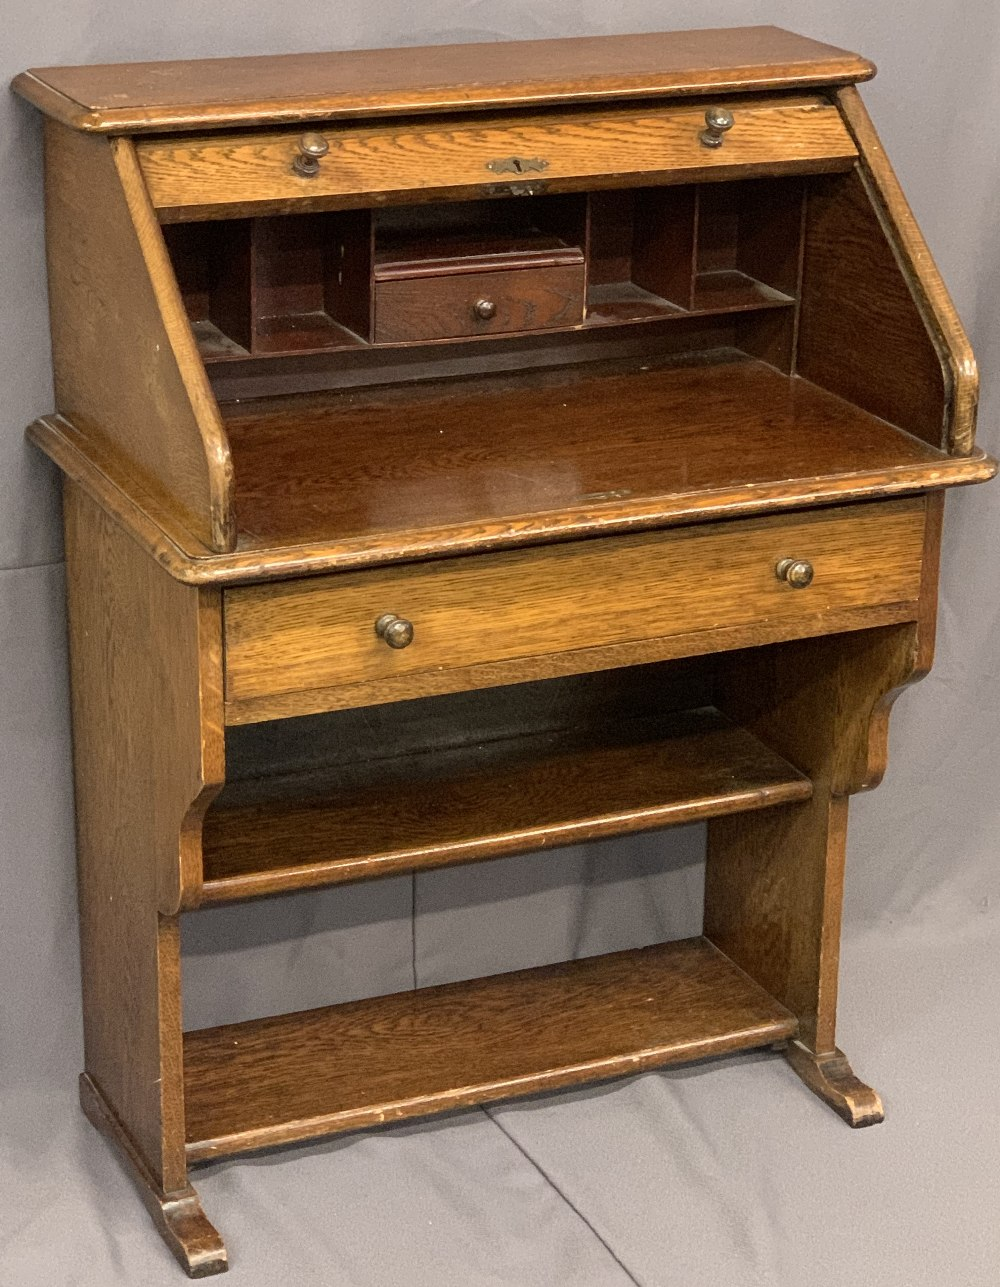 POLISHED ROLL TOP DESK - compact with shelved interior on an open base, 102cms H, 77cms W, 44cms D - Image 2 of 6